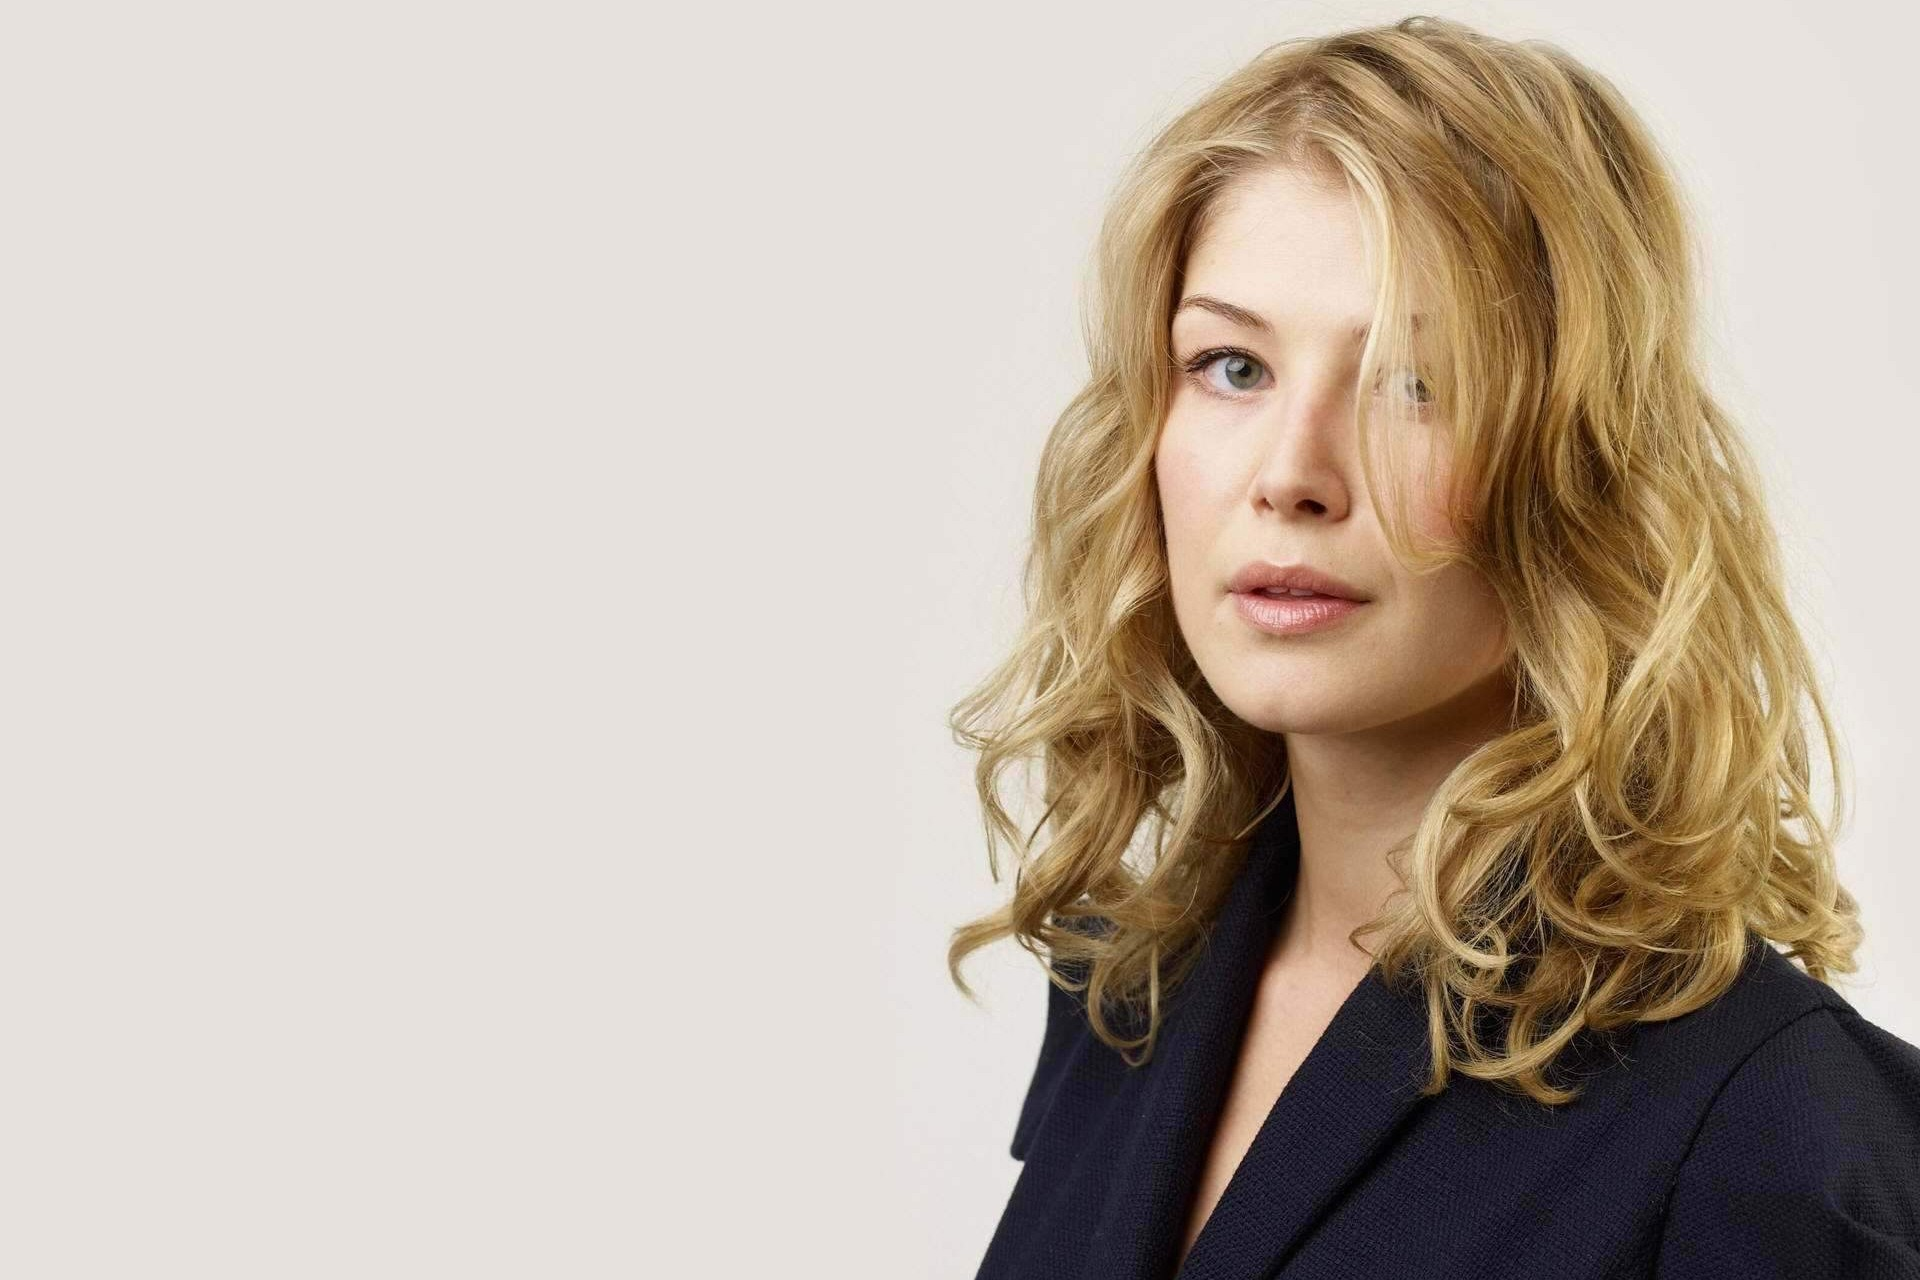 1920x1280 - Rosamund Pike Wallpapers 28